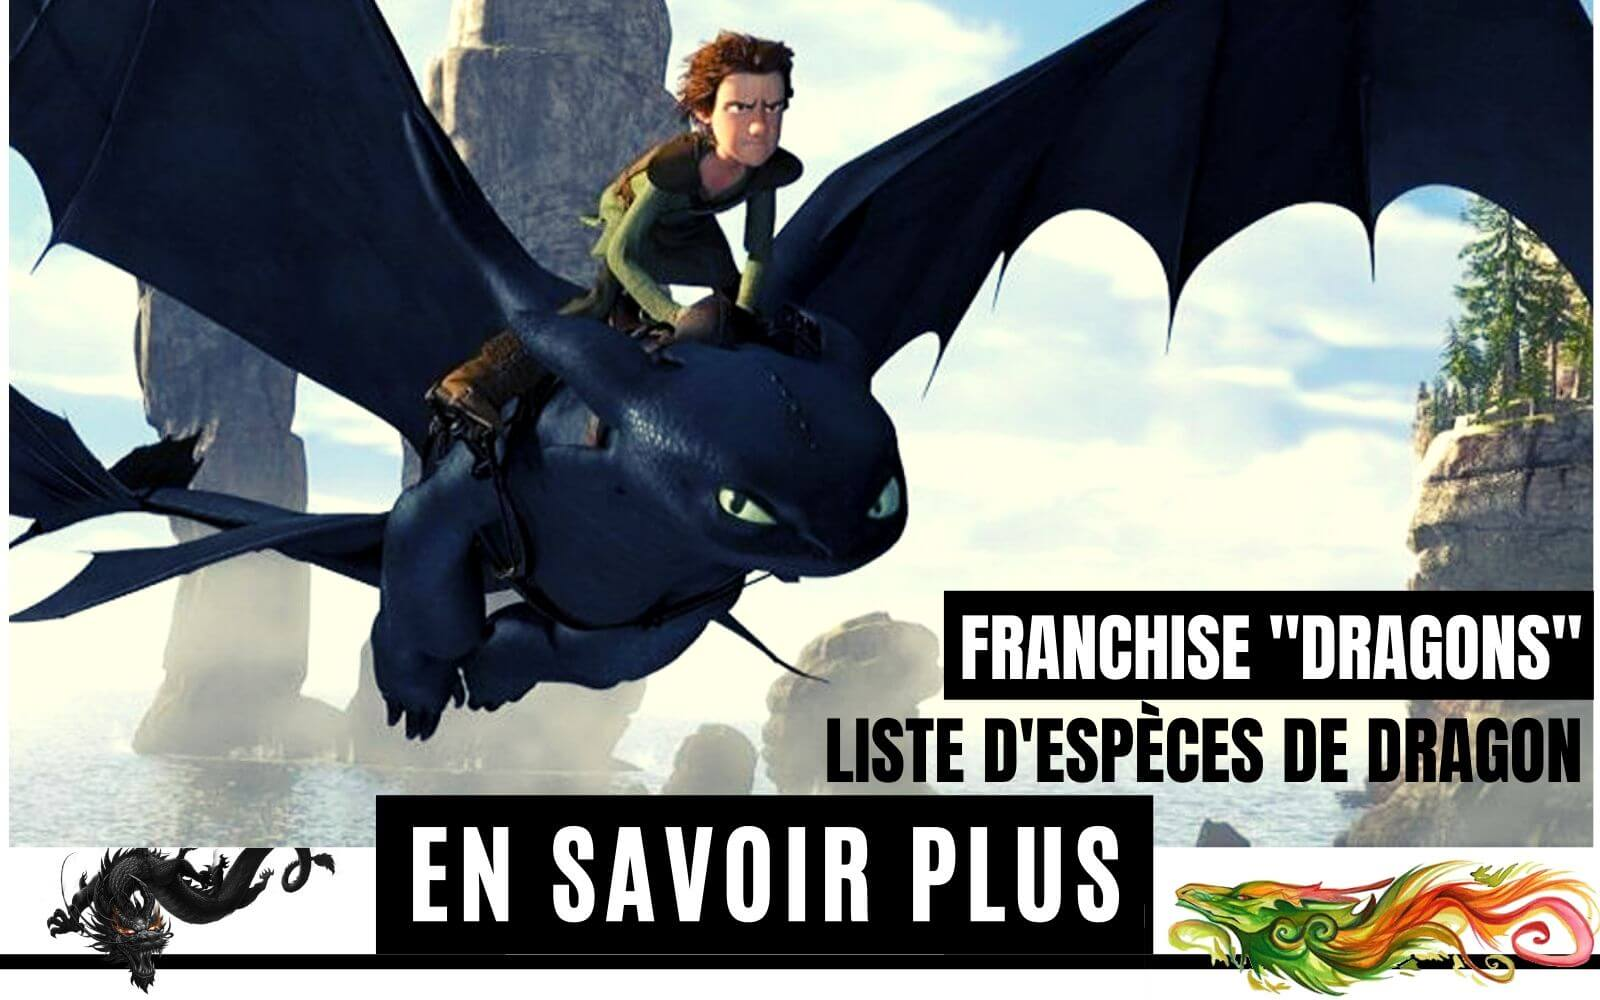 Liste d'espèces de dragon de la Franchise Dragons